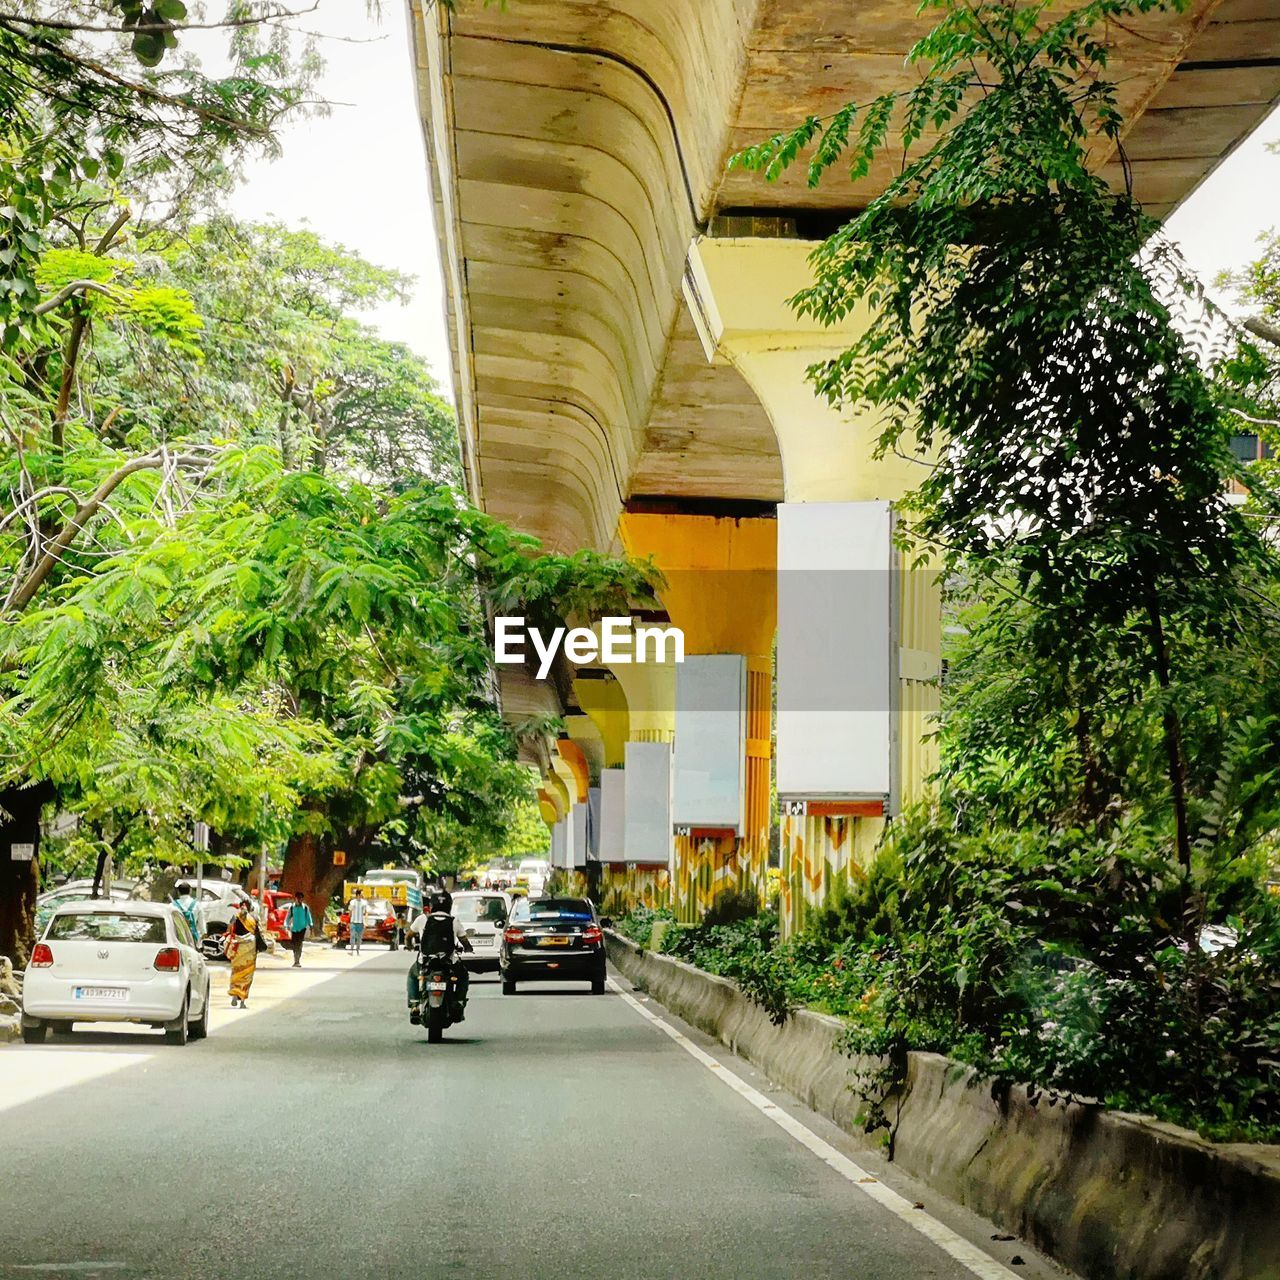 ROAD AMIDST TREES AND BUILDINGS